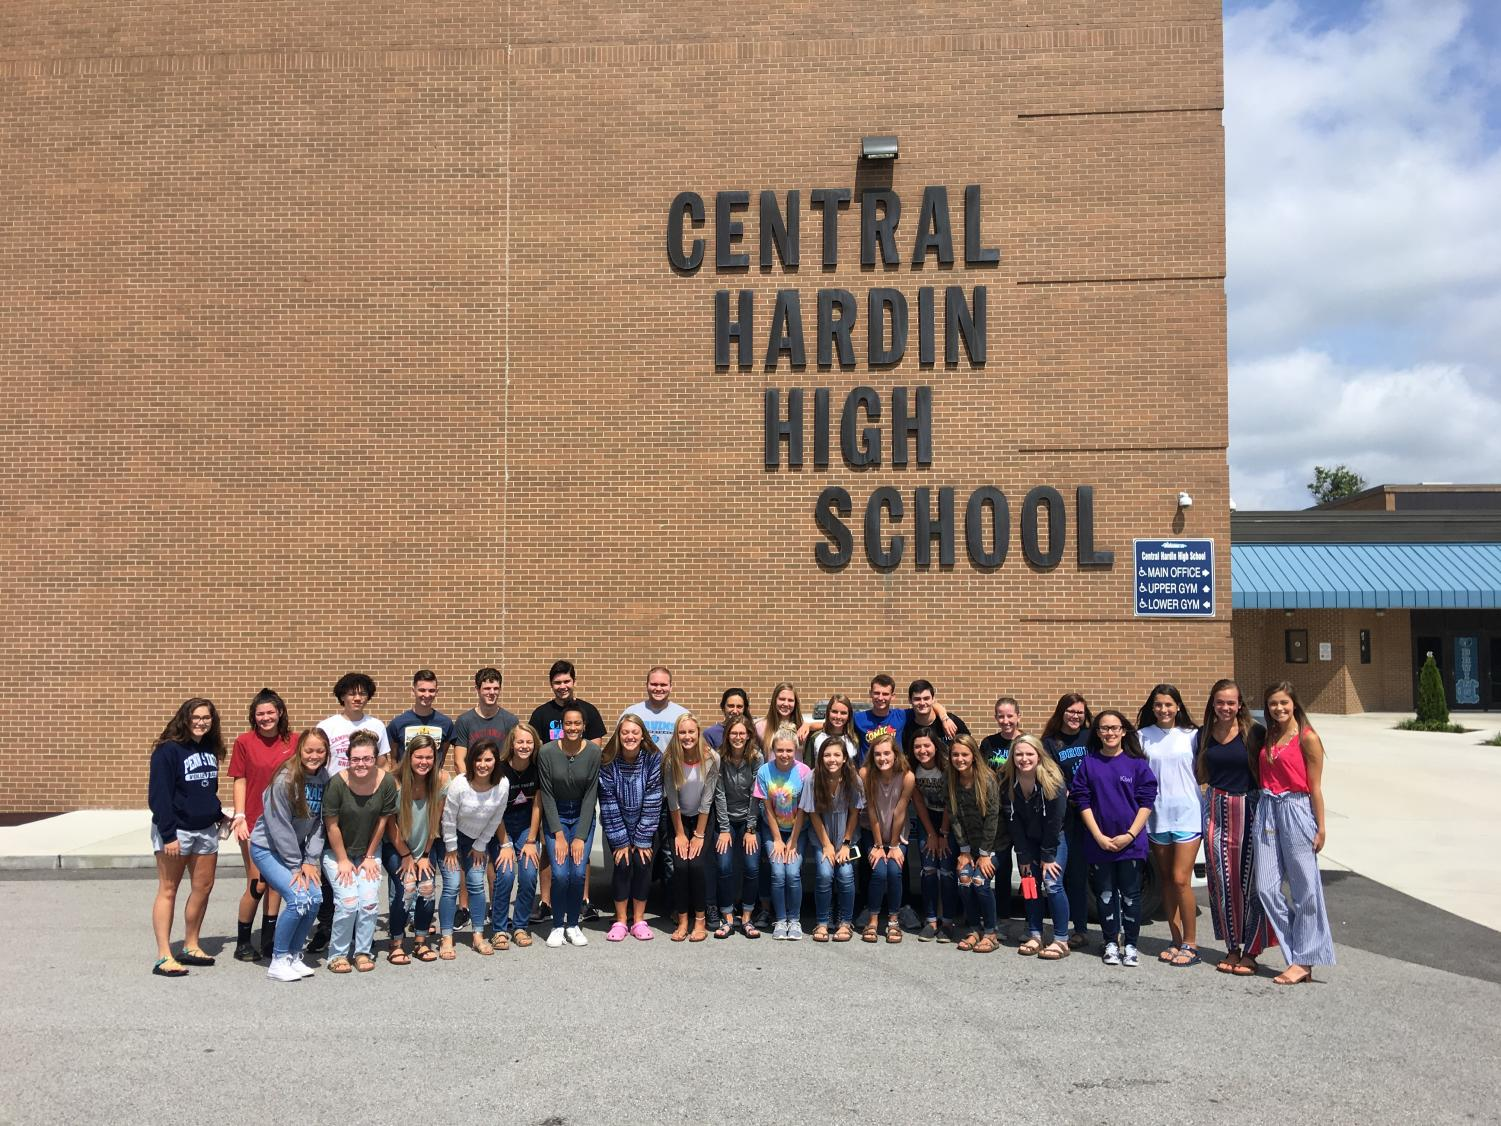 Members of CHHS's Executive Council pose for a picture. Service-oriented clubs like Executive Council, Beta Club, and Y-Club are a great way for students to get involved in their community.